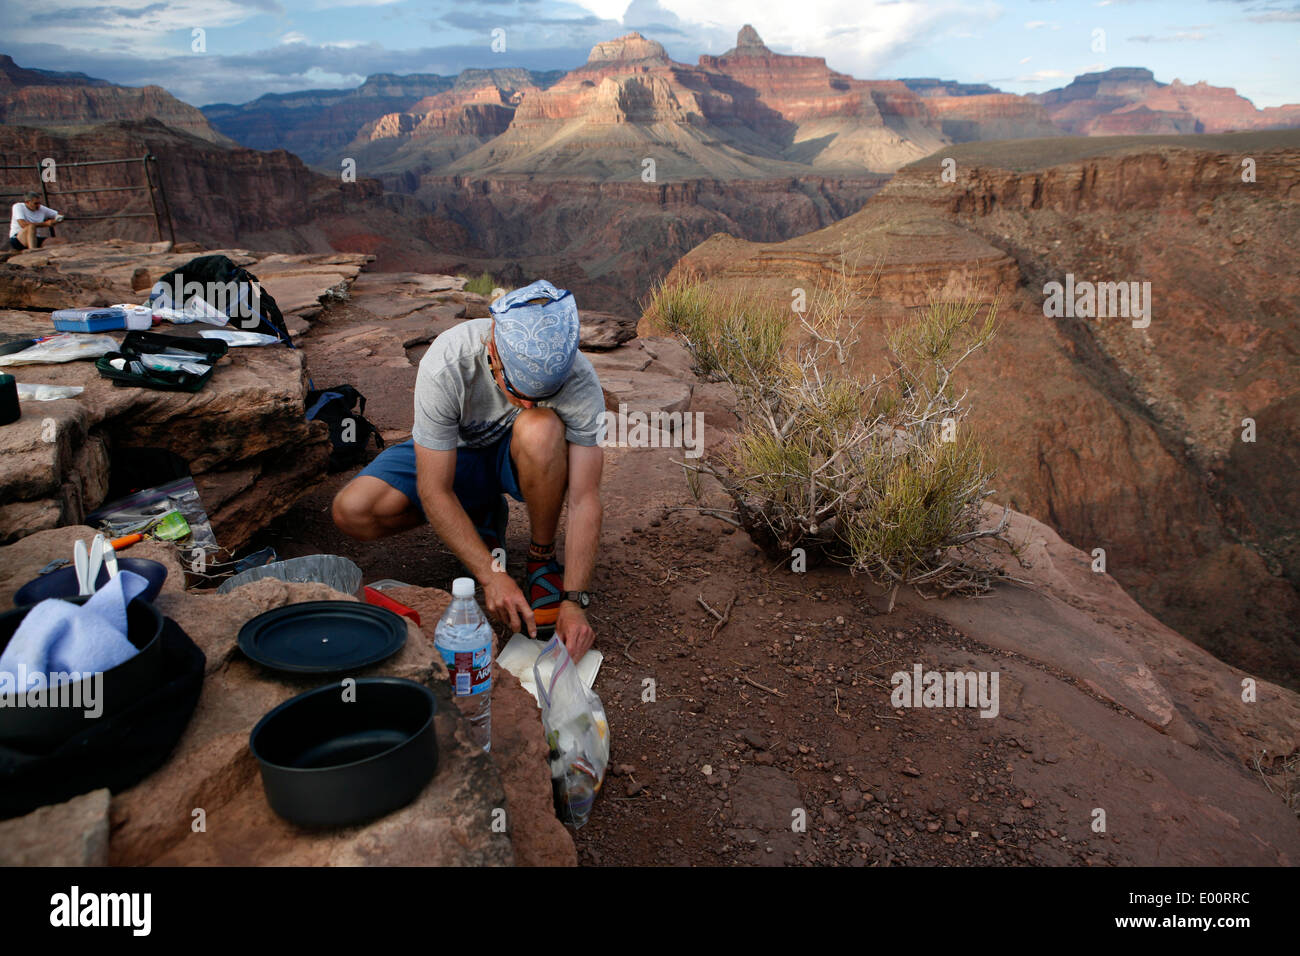 The Grand Canyon, a UNESCO World Heritage Site. - Stock Image